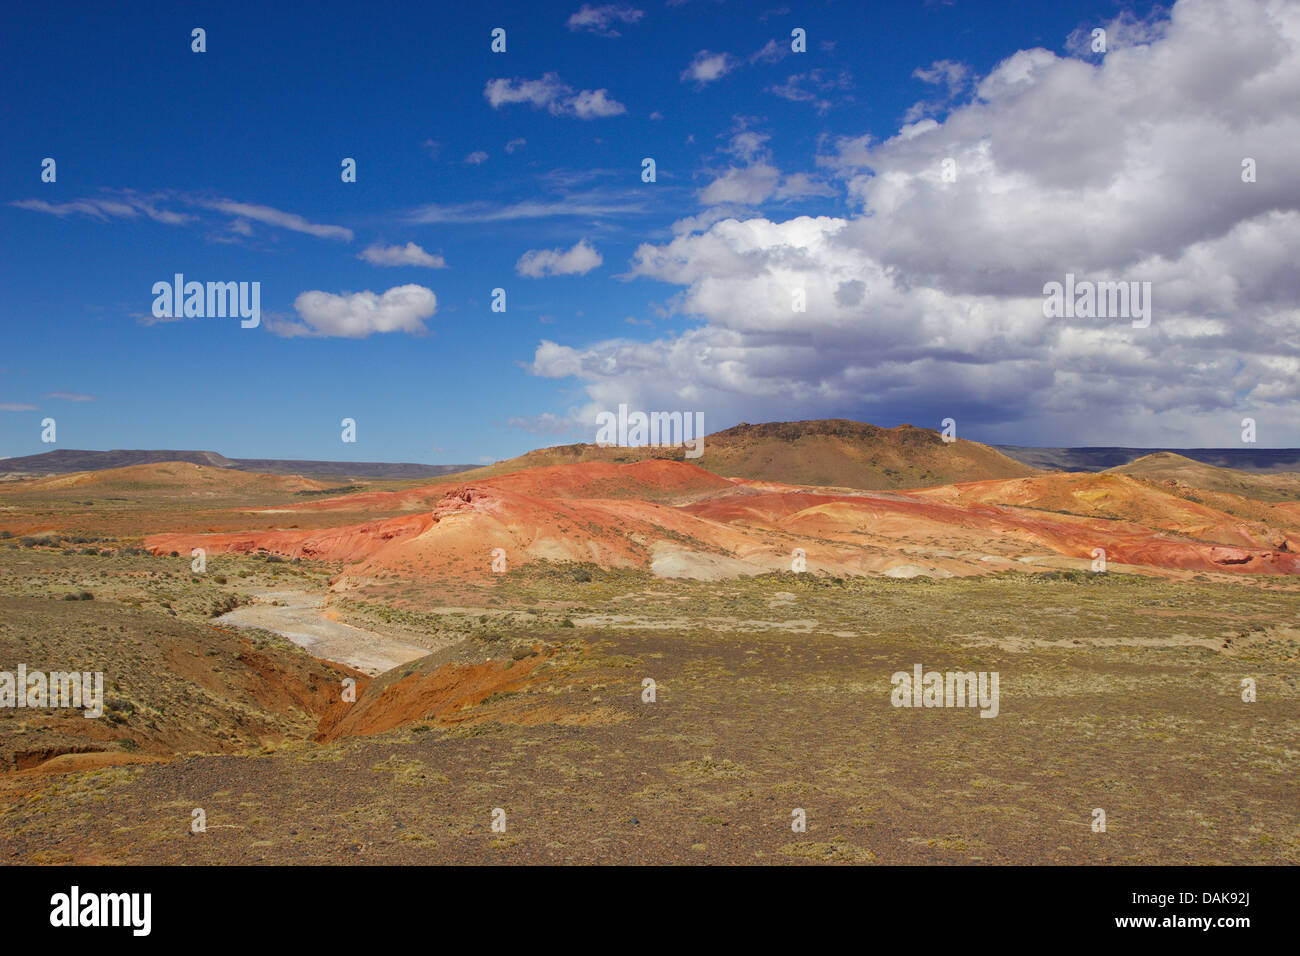 steppe landscape at Ruta 40 south of Perito Moreno, Argentina, Patagonia - Stock Image